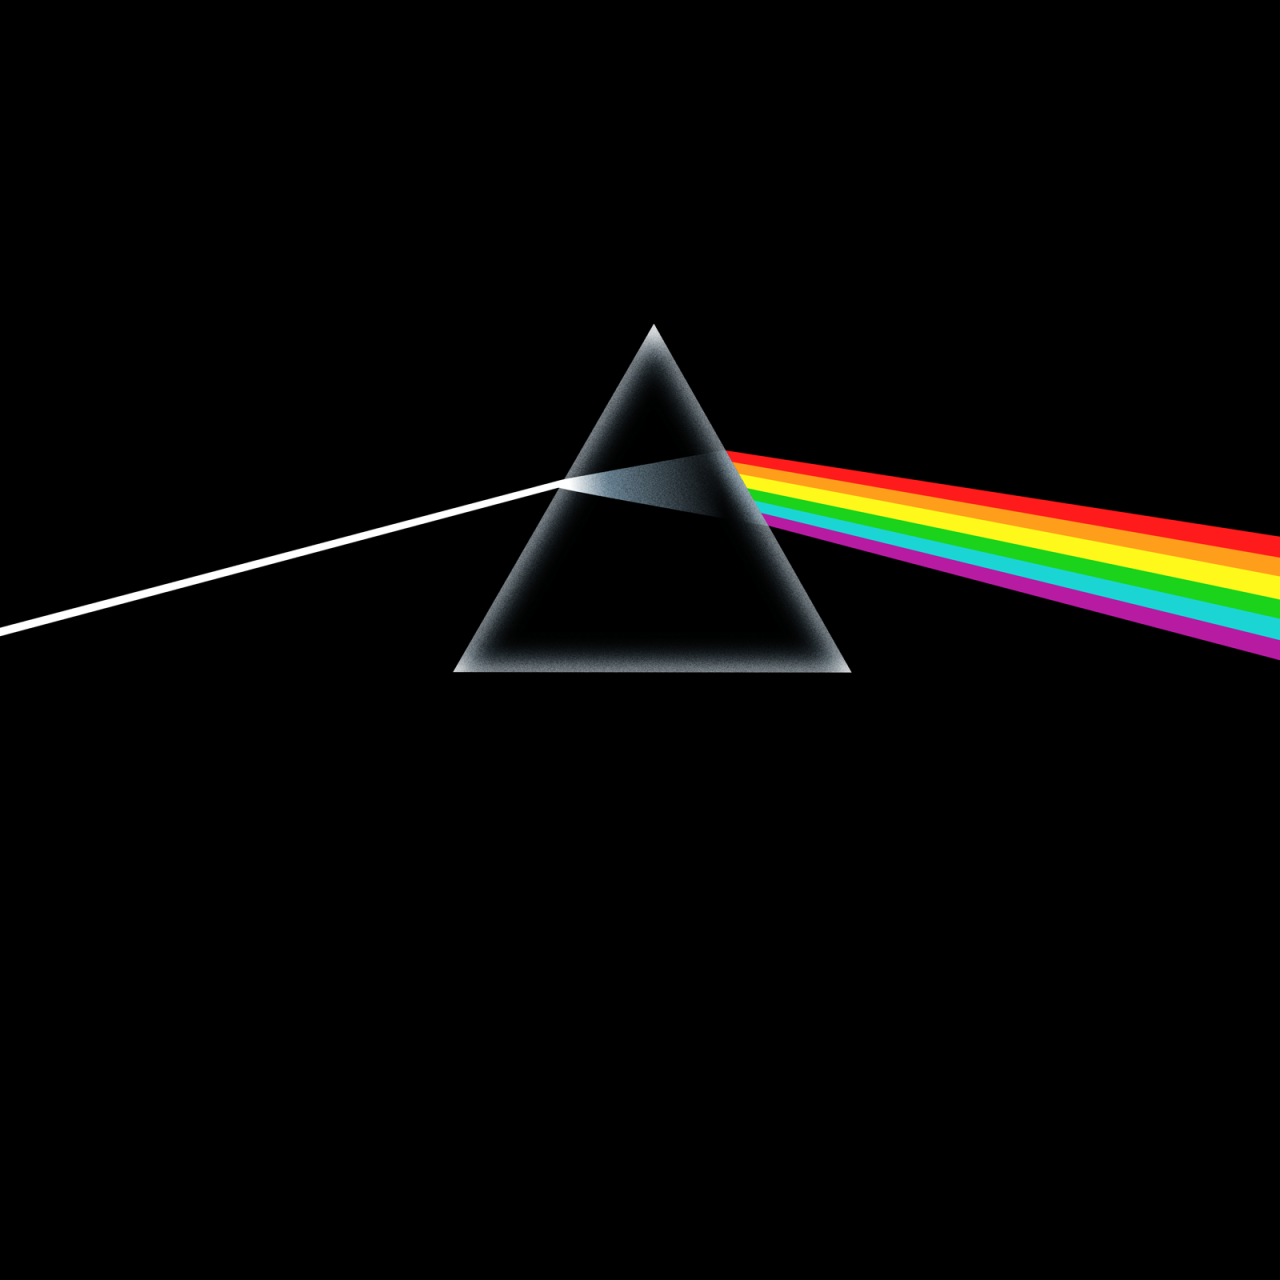 Pink Floyd 'The Dark Side of the Moon', Harvest, 1973. Designed by Hypgnosis and George Hardie. Artwork by George Hardie.